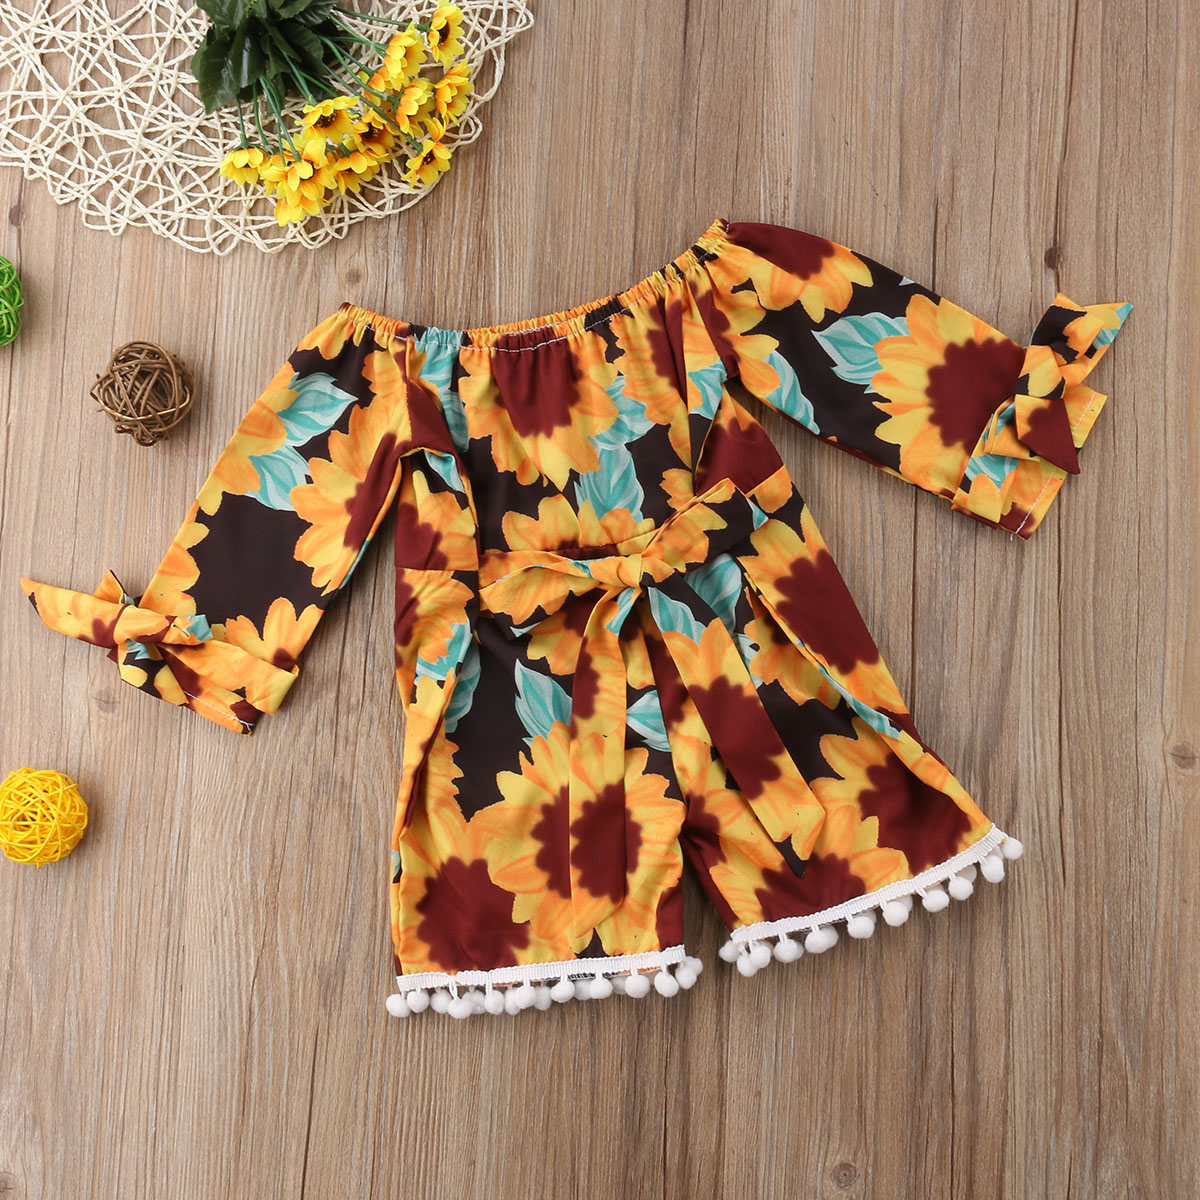 d6fee6609456 2018 New Kids Baby Girl Clothes Sunflower Romper Off Shoulder Jumpsuit  Sunsuit Outfits Summer Set-in Rompers from Mother   Kids on Aliexpress.com